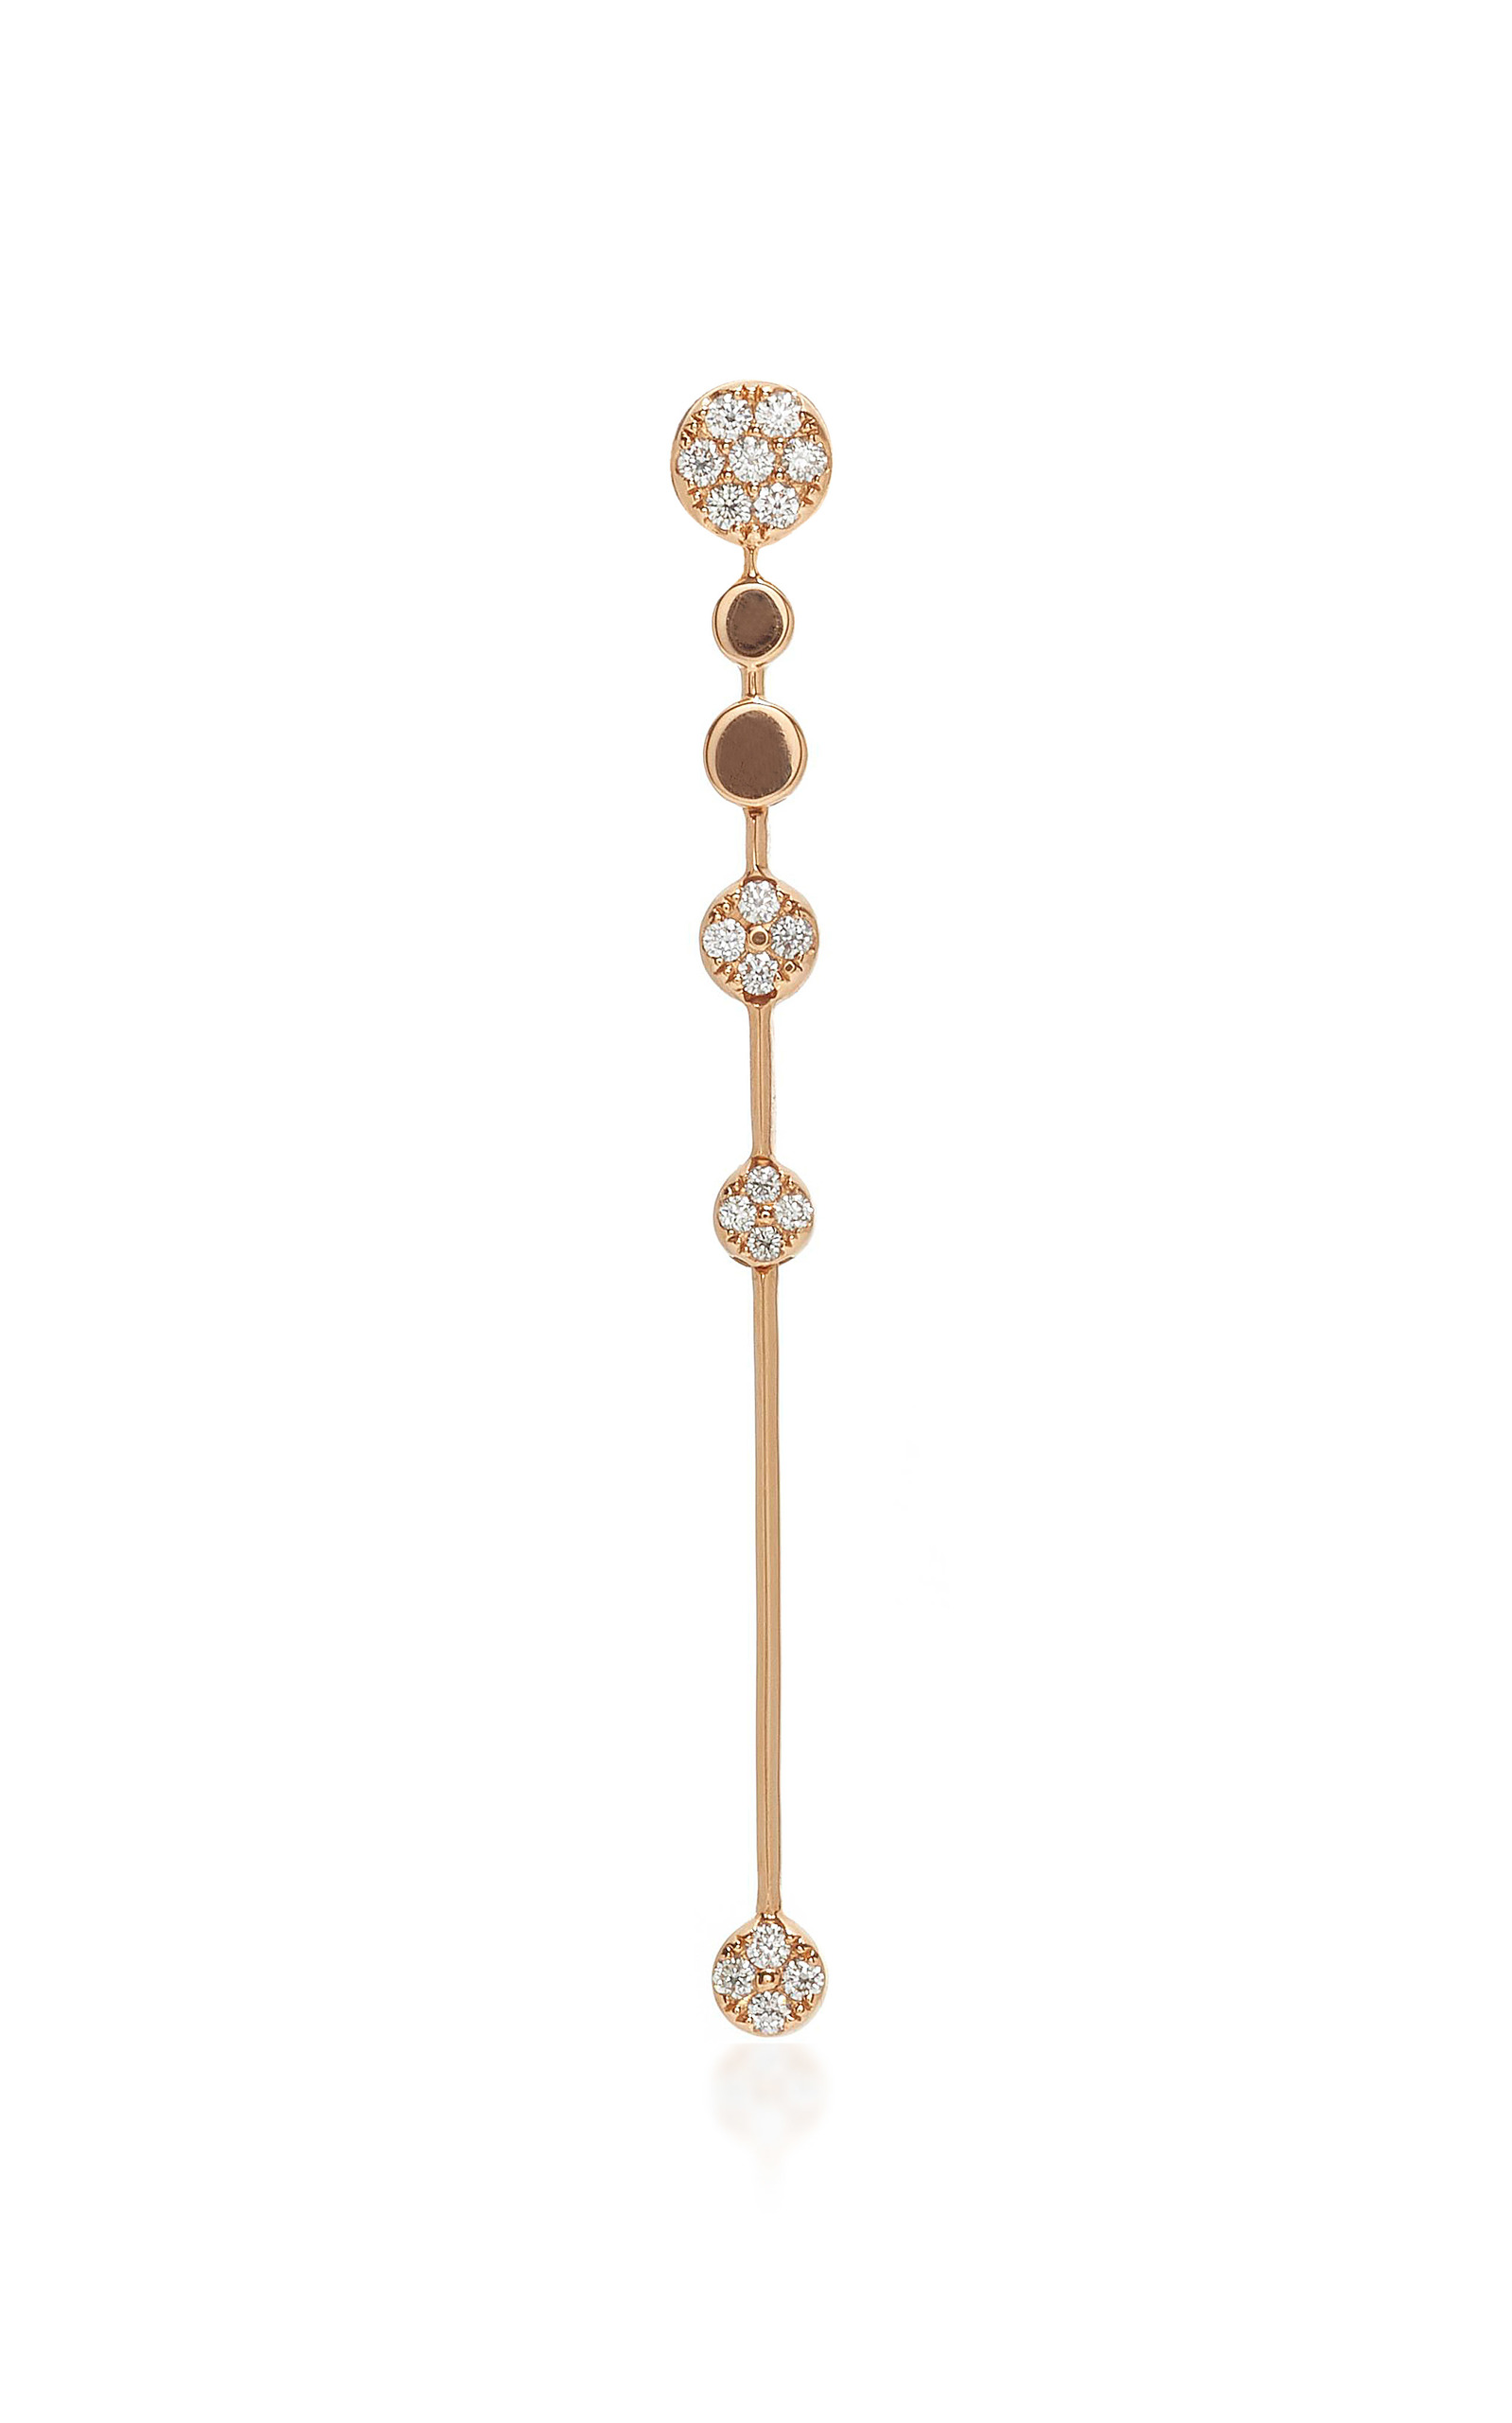 elver pin single for preorder earring earrings wendes moda operandi on charlotte by